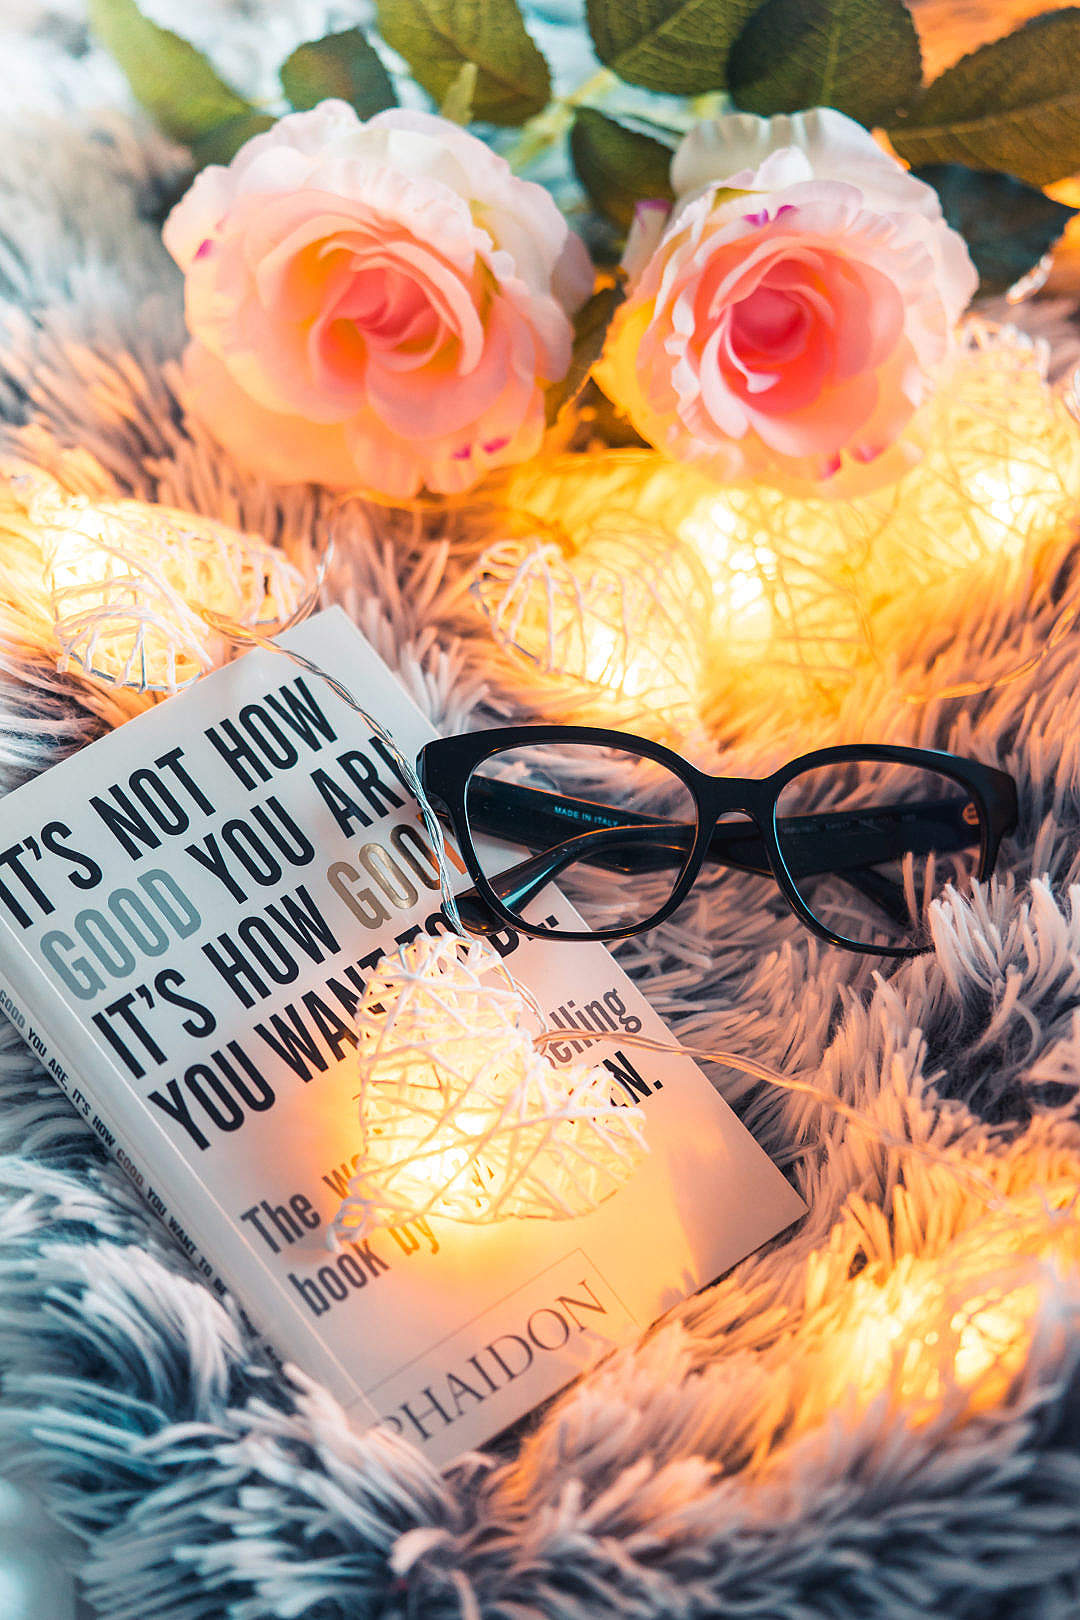 Download Book and Glasses Reading Mood FREE Stock Photo